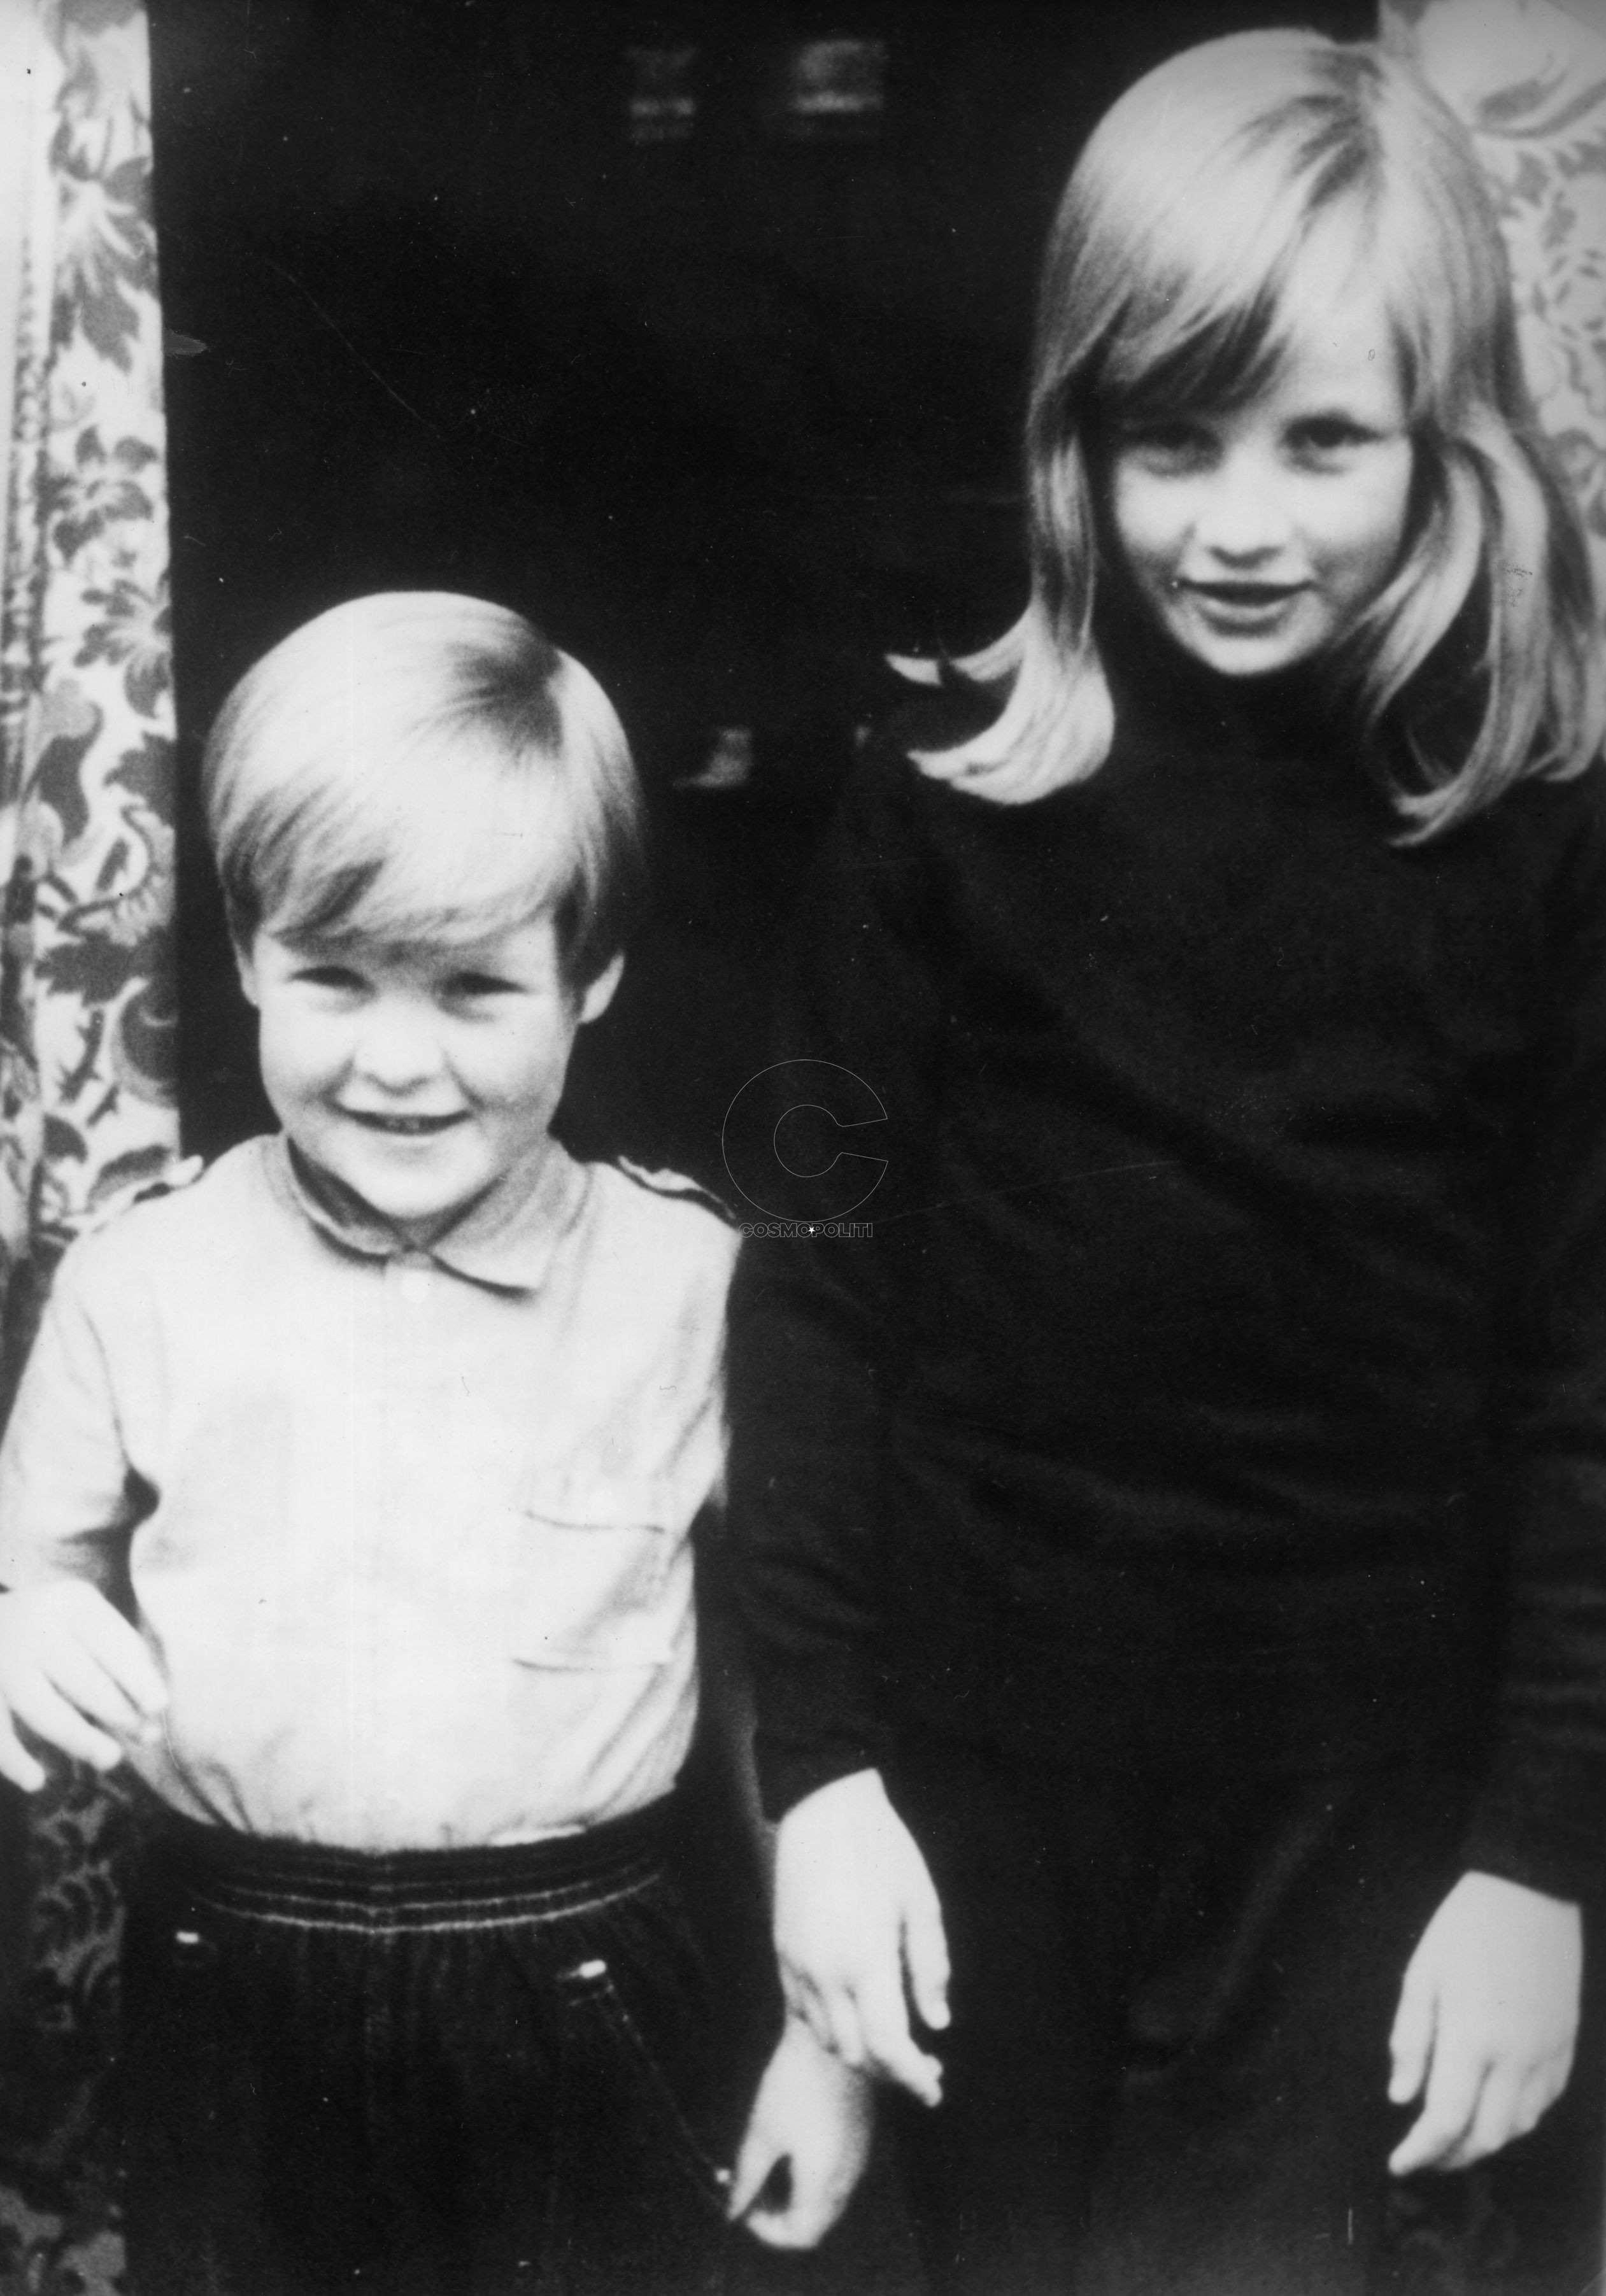 1968: Lady Diana Spencer (1961 - 1997) (Diana Princess of Wales) with her brother Charles, Viscount Althorp, (Earl Spencer) at their home in Berkshire. (Photo by Central Press/Getty Images)